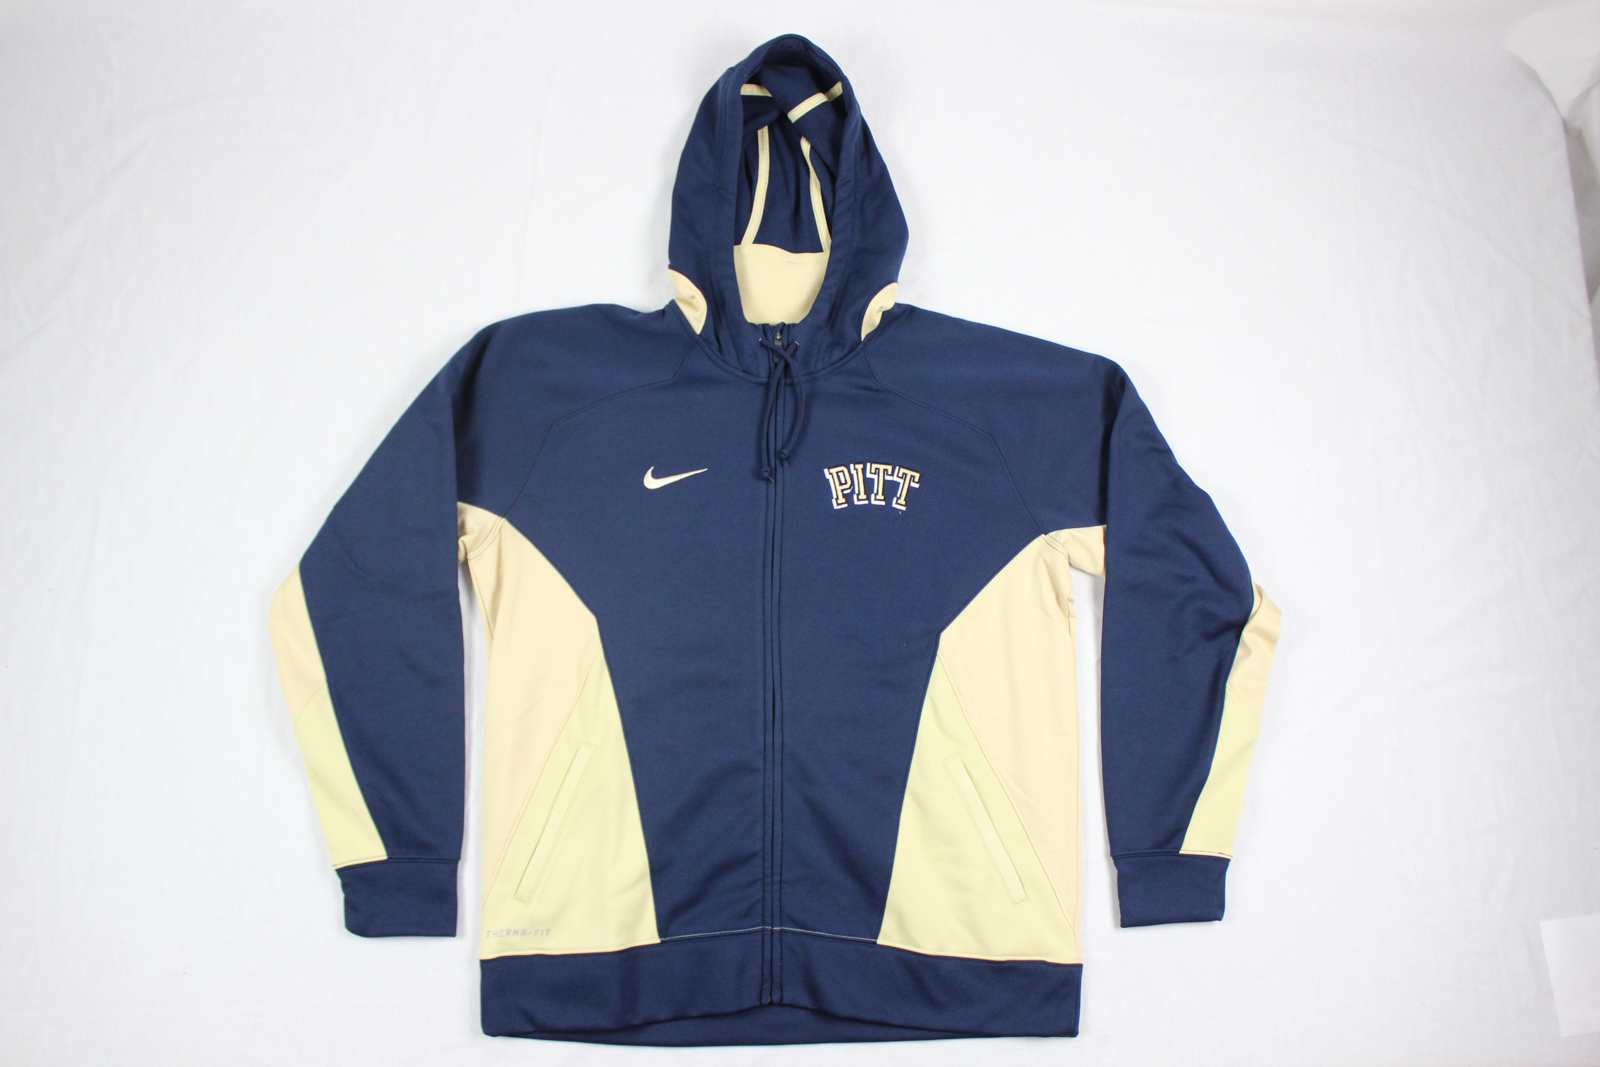 aa236d0d6383 Details about NEW Nike Pittsburgh Panthers - Blue Gold Therma-Fit Jacket  (XL)